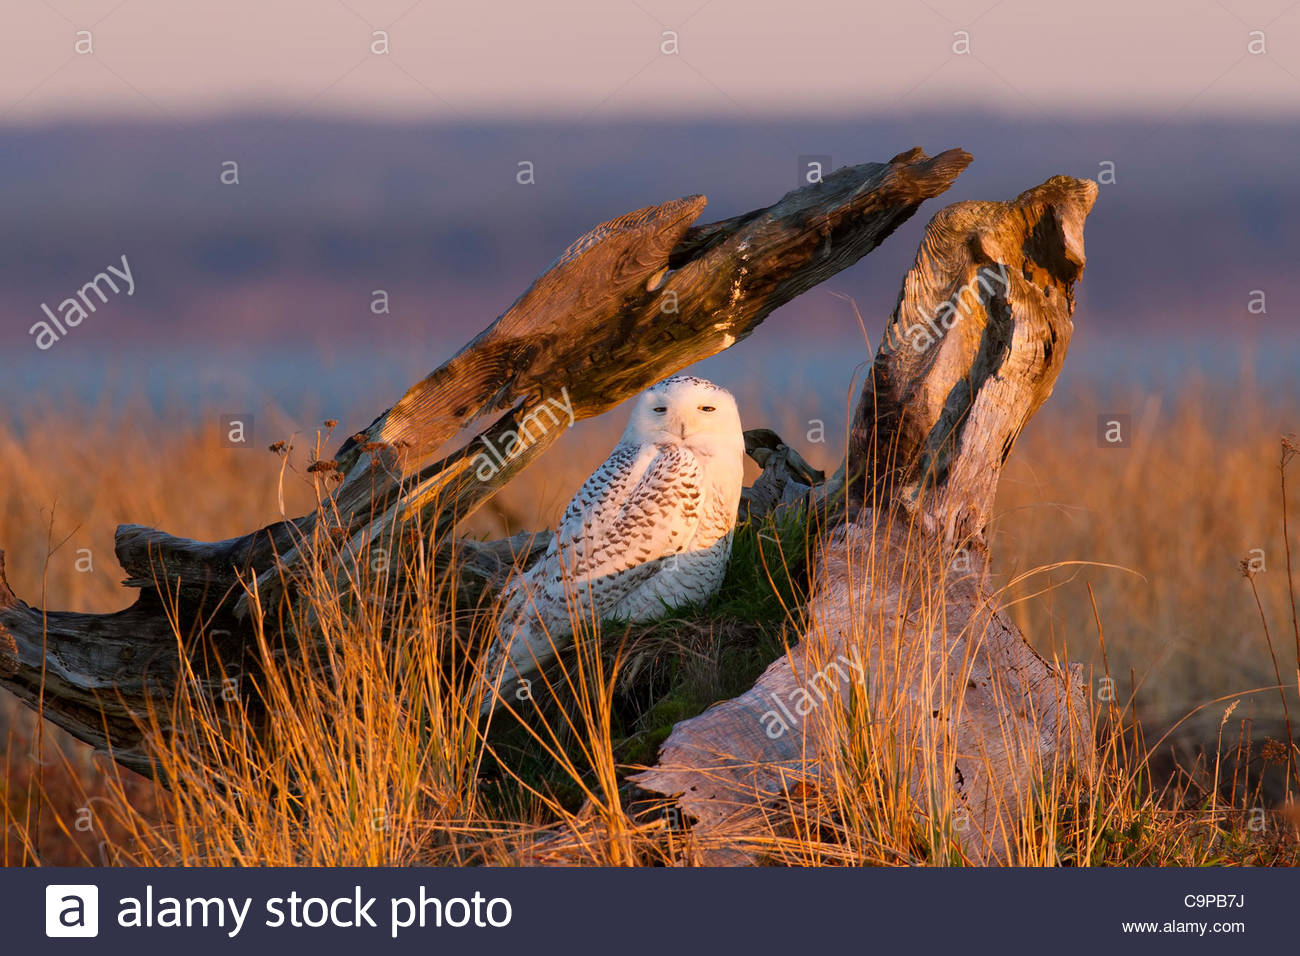 A snowy owl (Nyctea scandiaca) rests in an old stump at Damon Point in Ocean Shores, Washington. Snowy owls, which - Stock Image